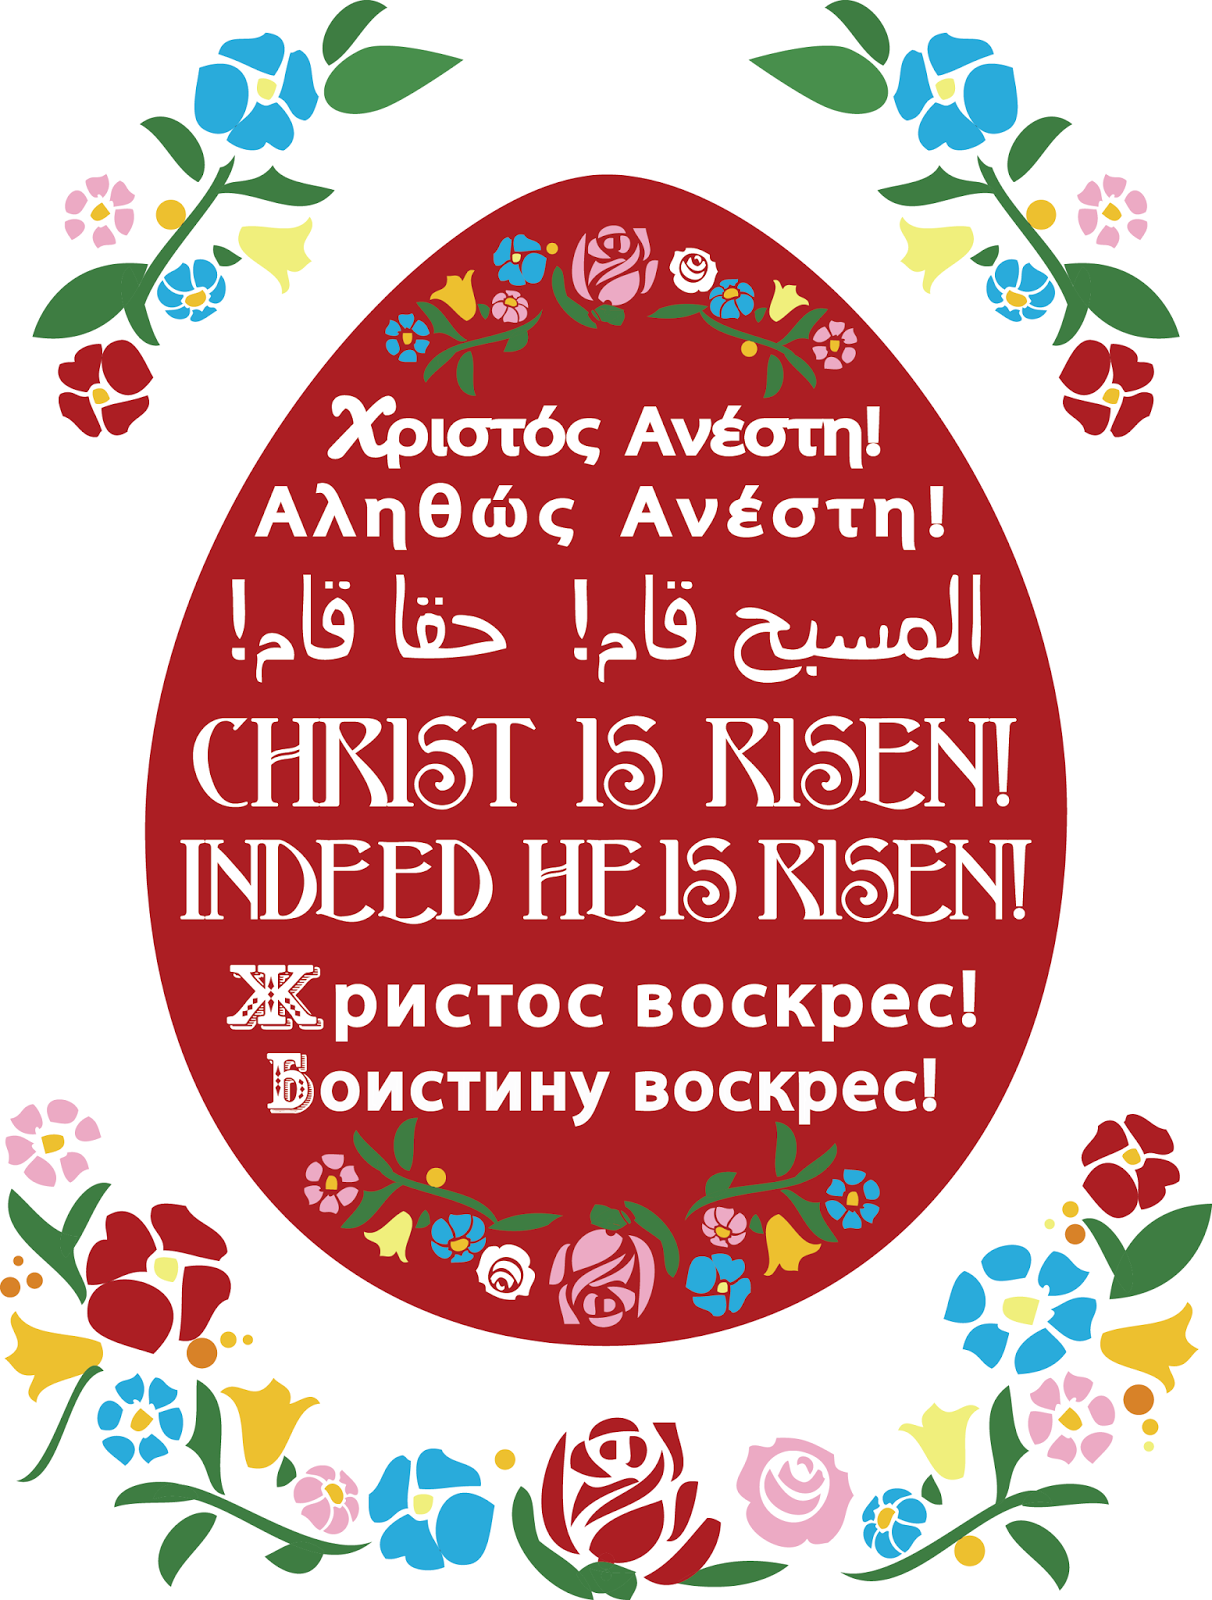 Serbian orthodox easter greeting christmas imagess club serbian orthodox easter greeting kristyandbryce Images